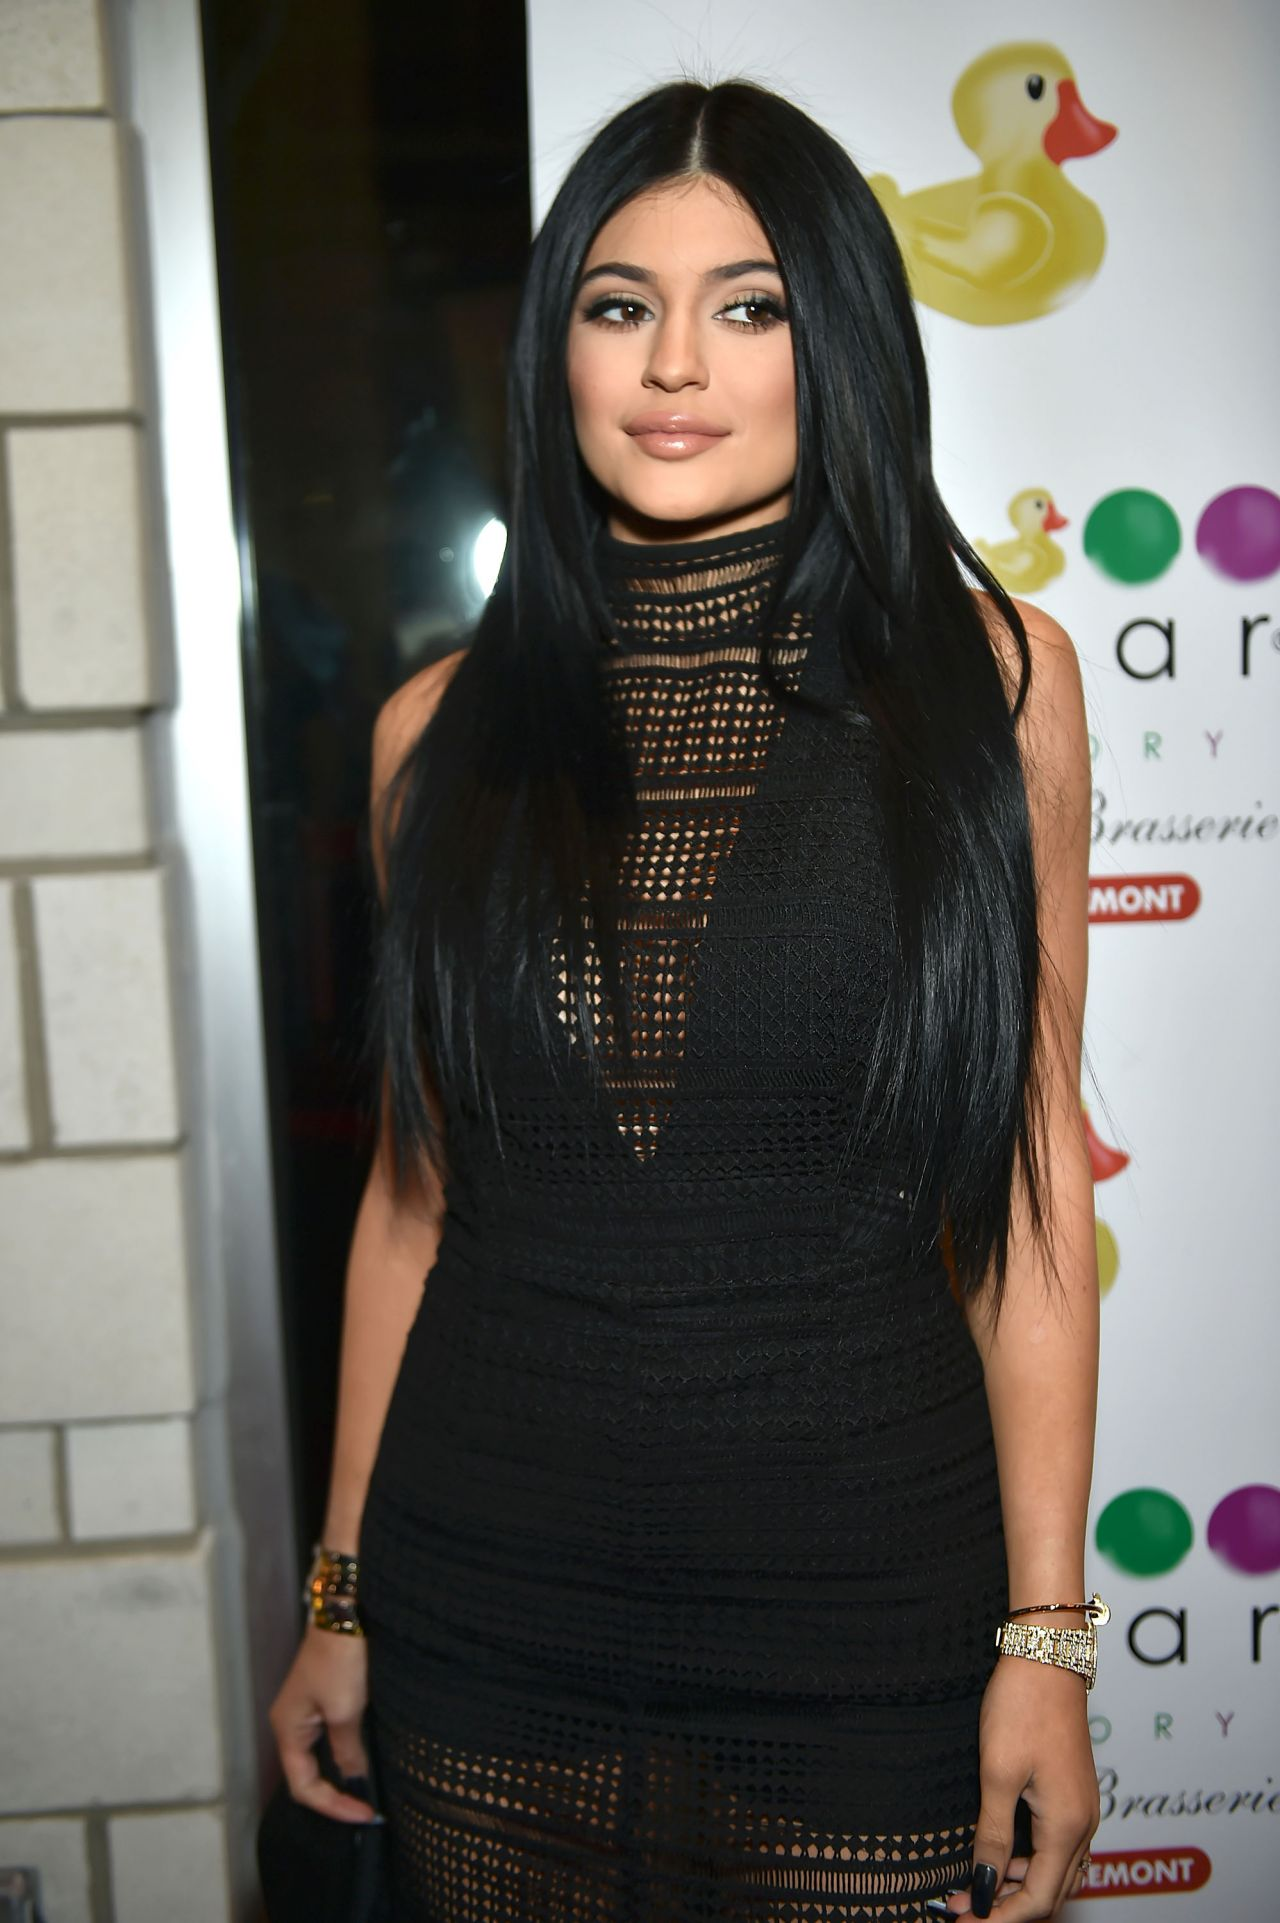 Kylie Jenner Depressed: Sugar Factory American Brasserie Grand